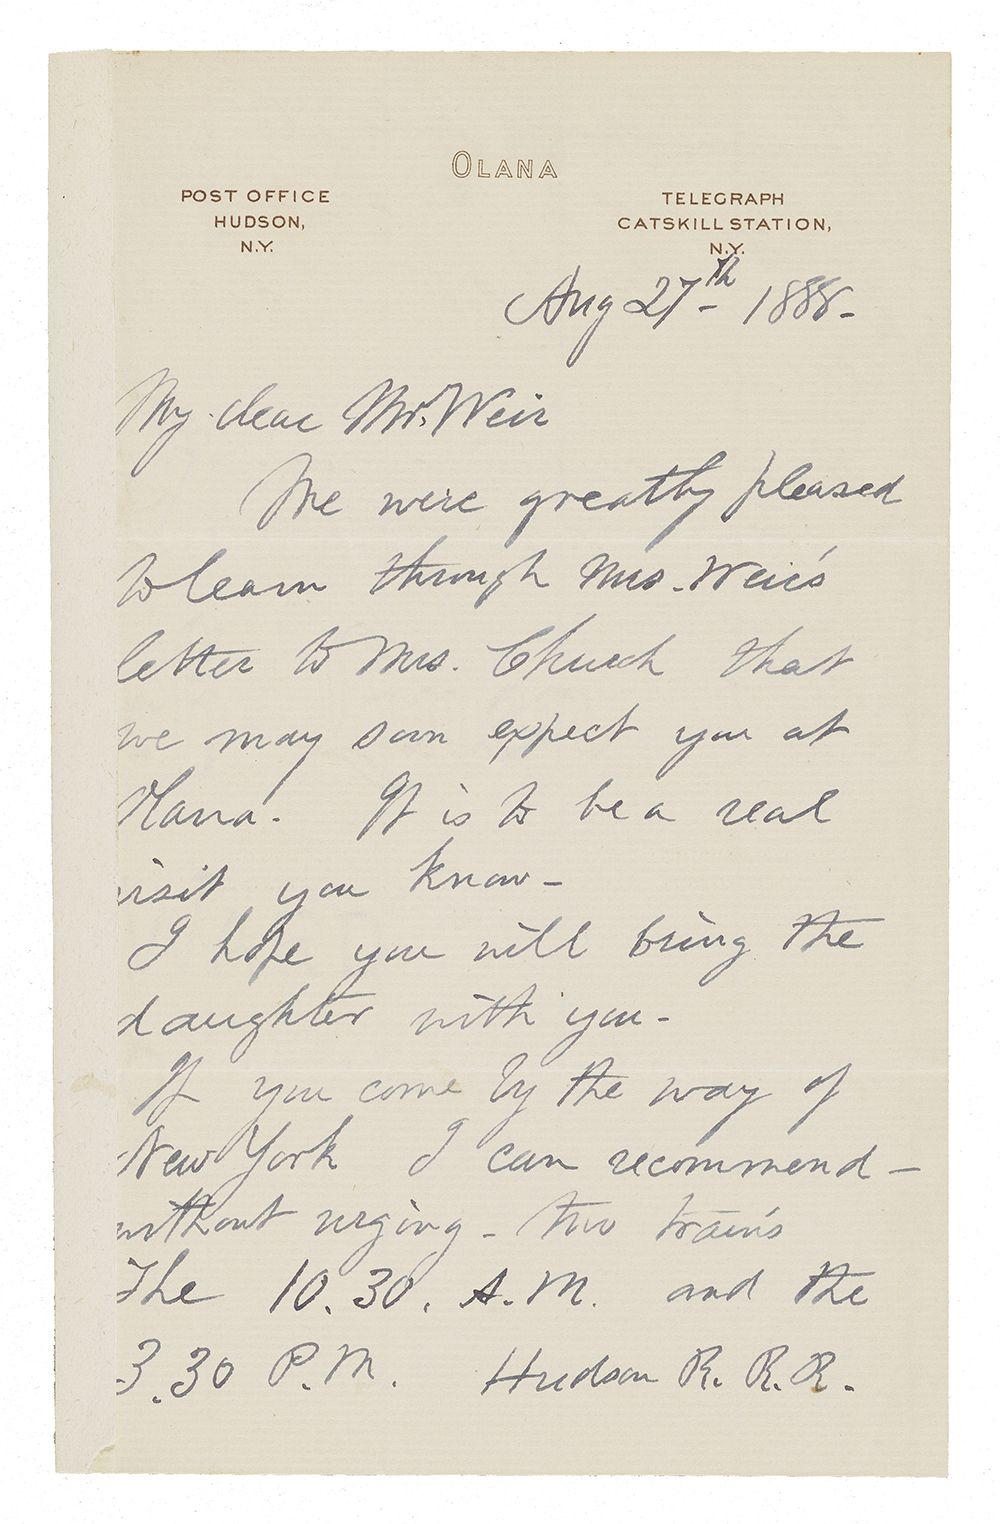 Letter written in dark blue ink and cursive hadwriting with letterhead from Olana.